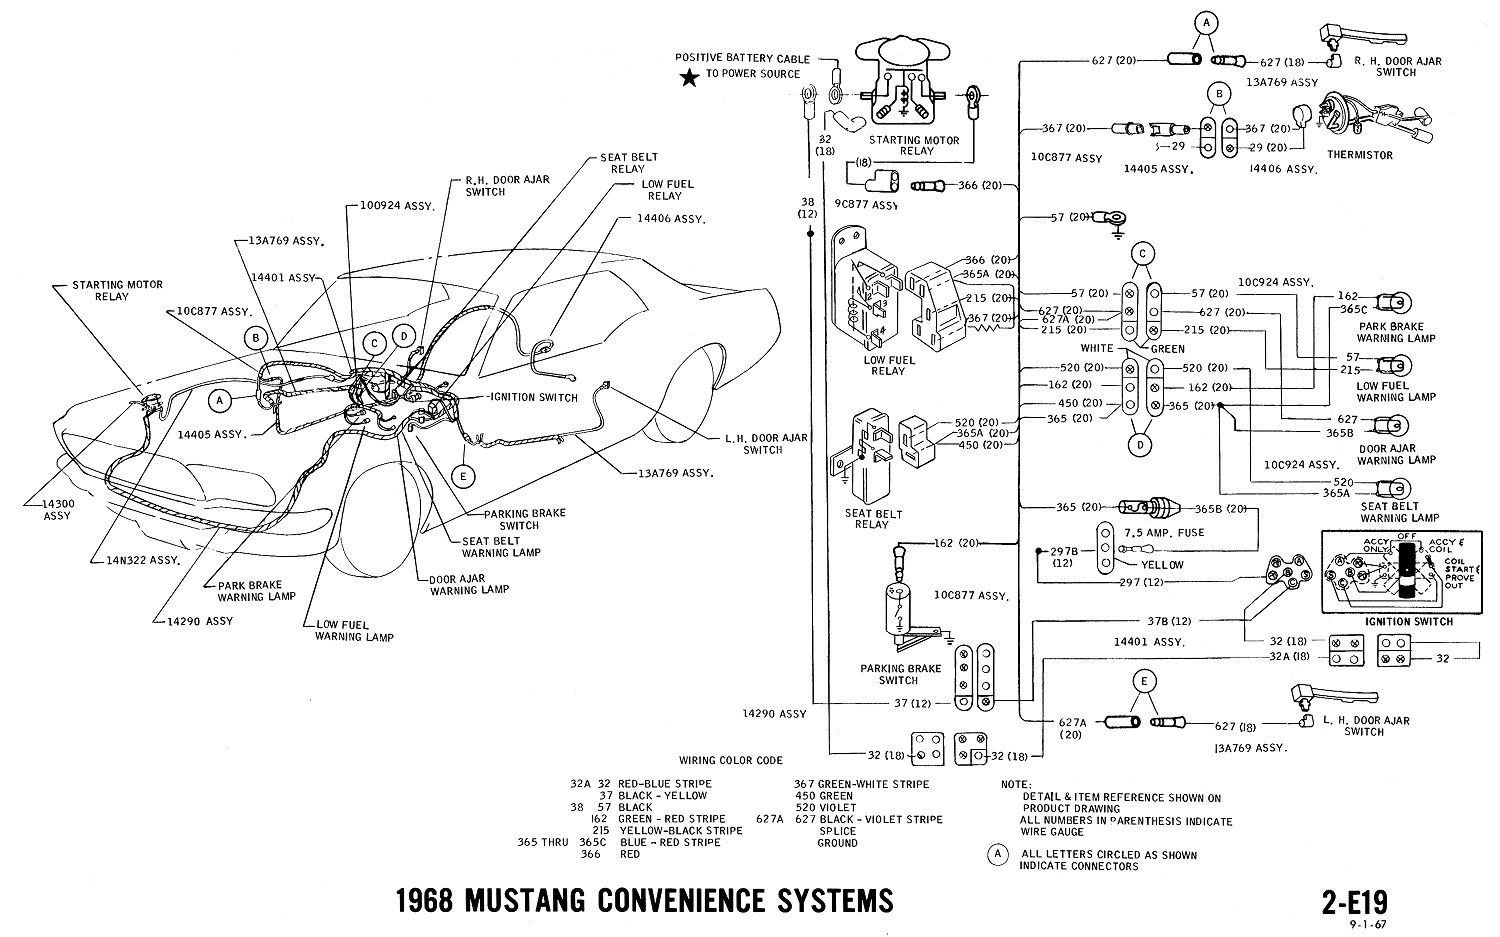 1968 Mustang Wiring Diagram Vacuum Schematics on 1967 chevelle fuse box diagram